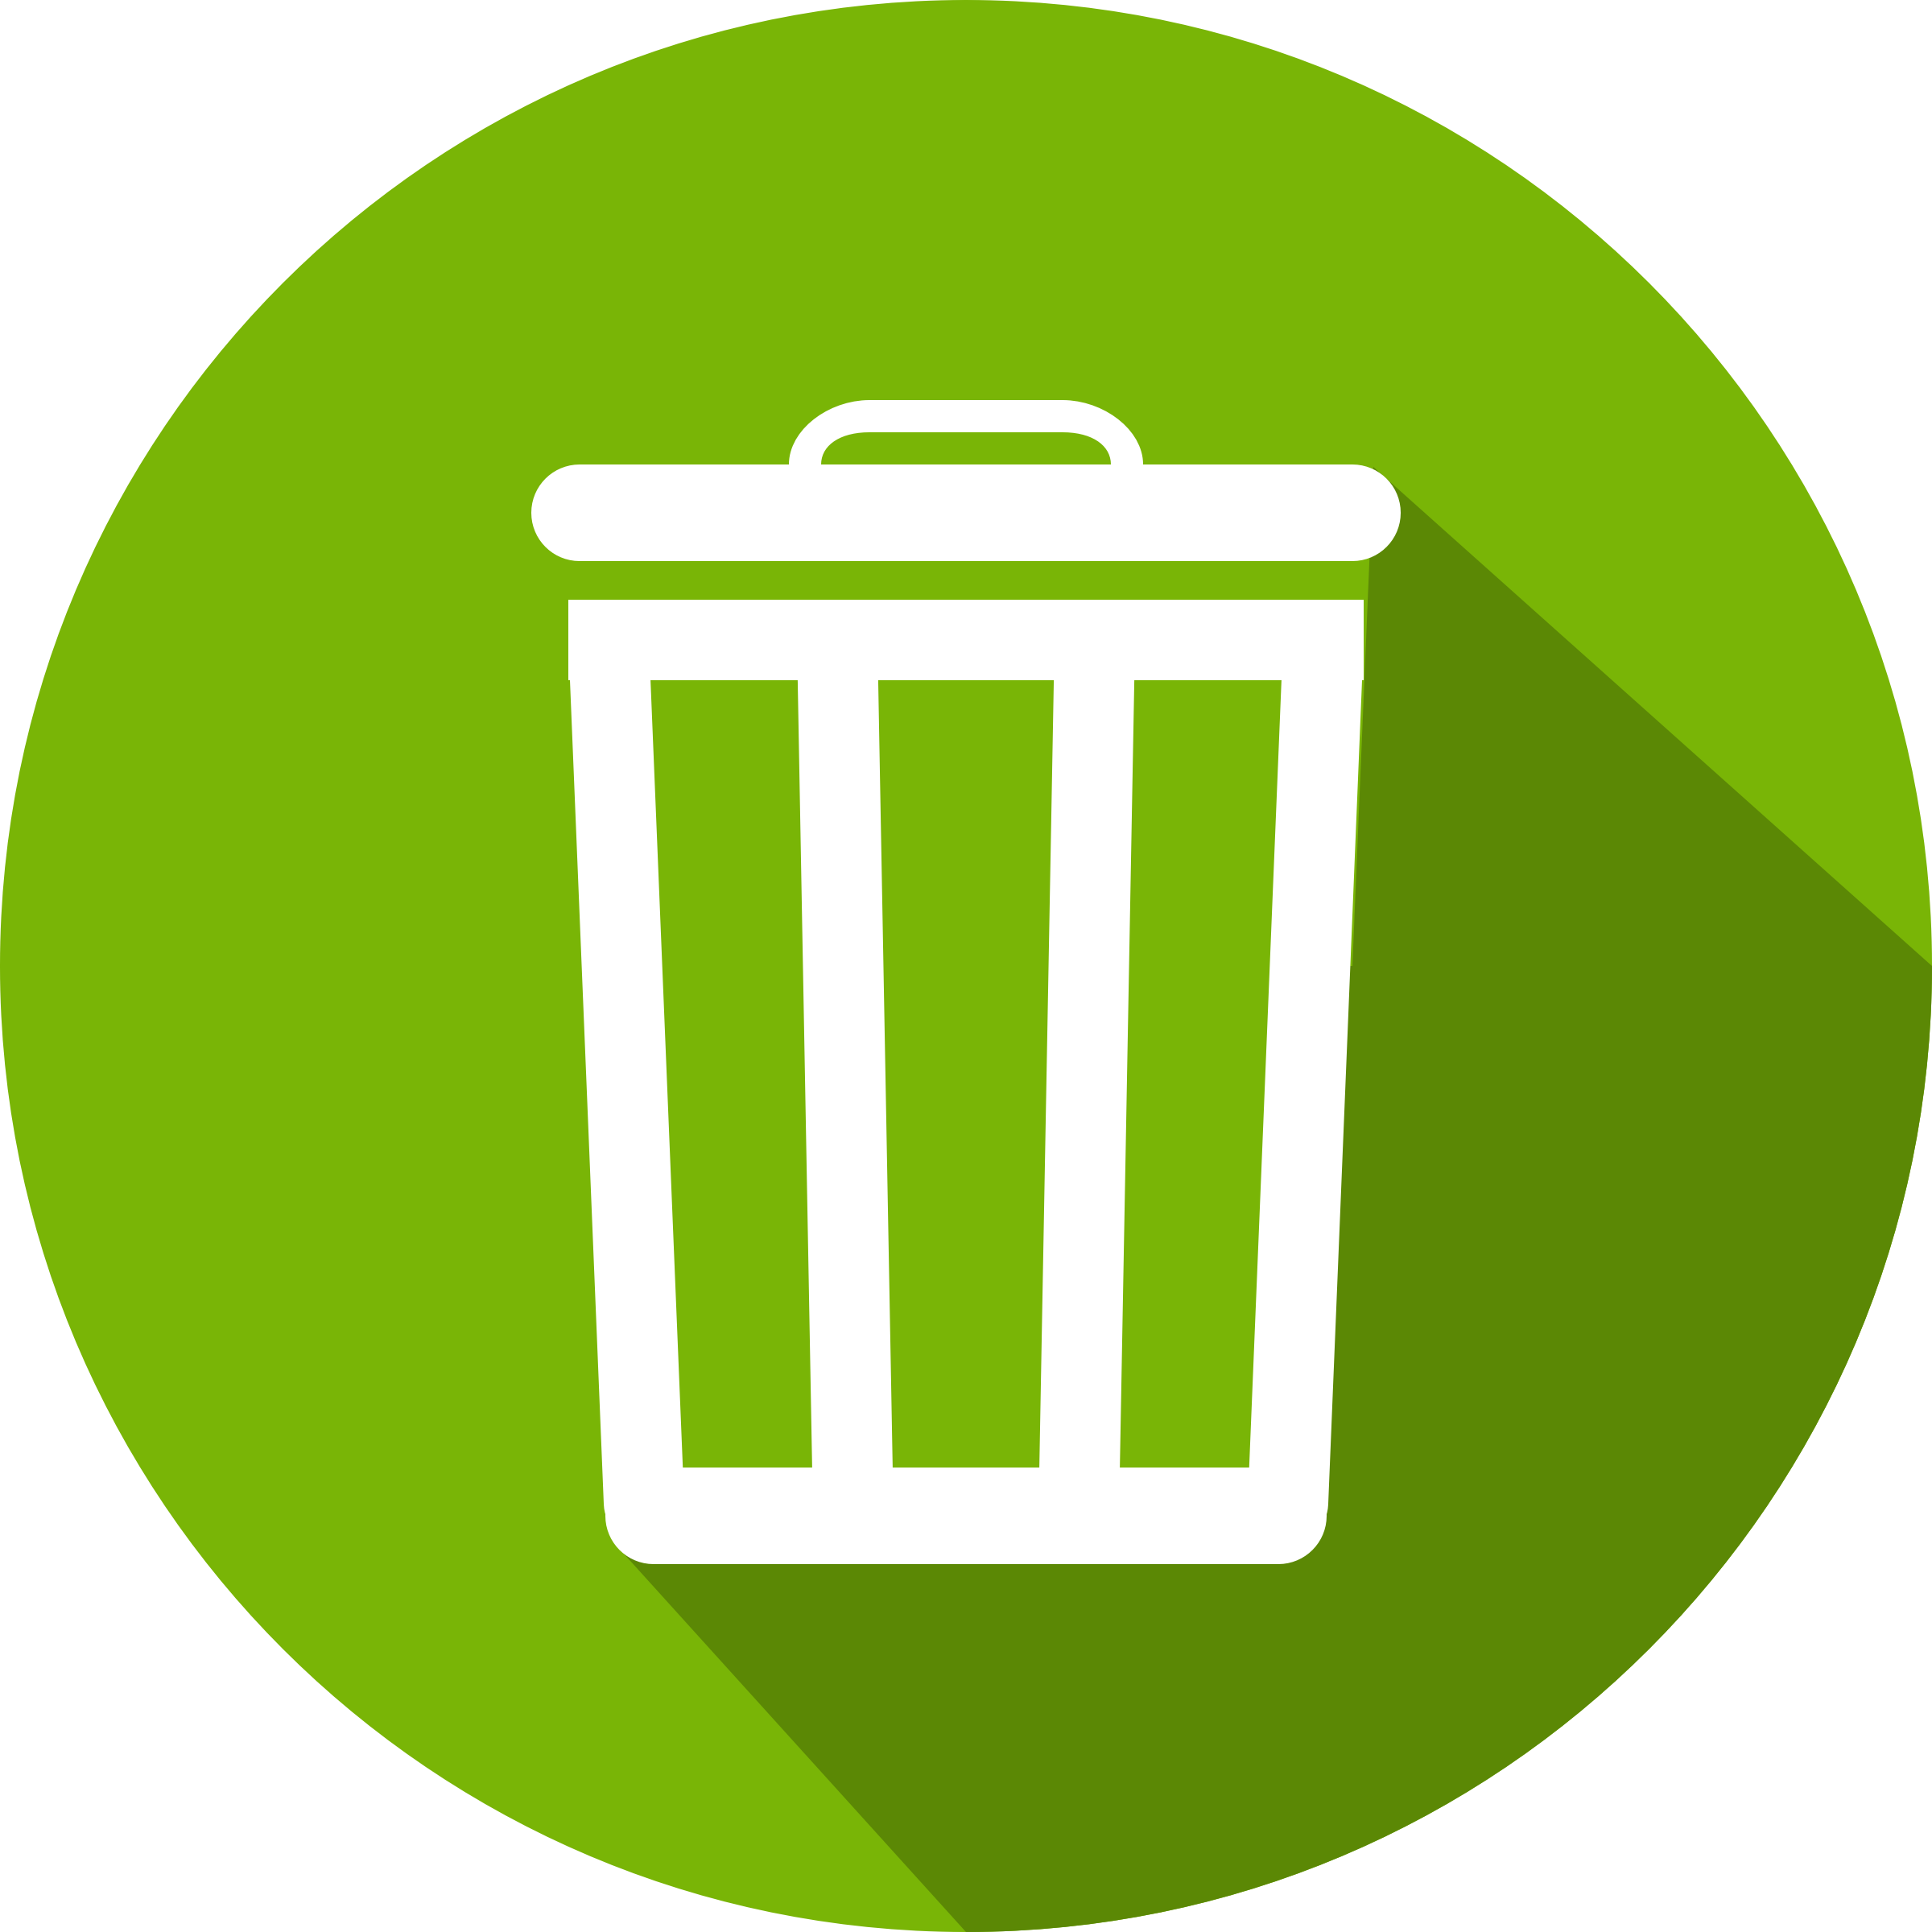 Folder clipart bin. Images of binary icon